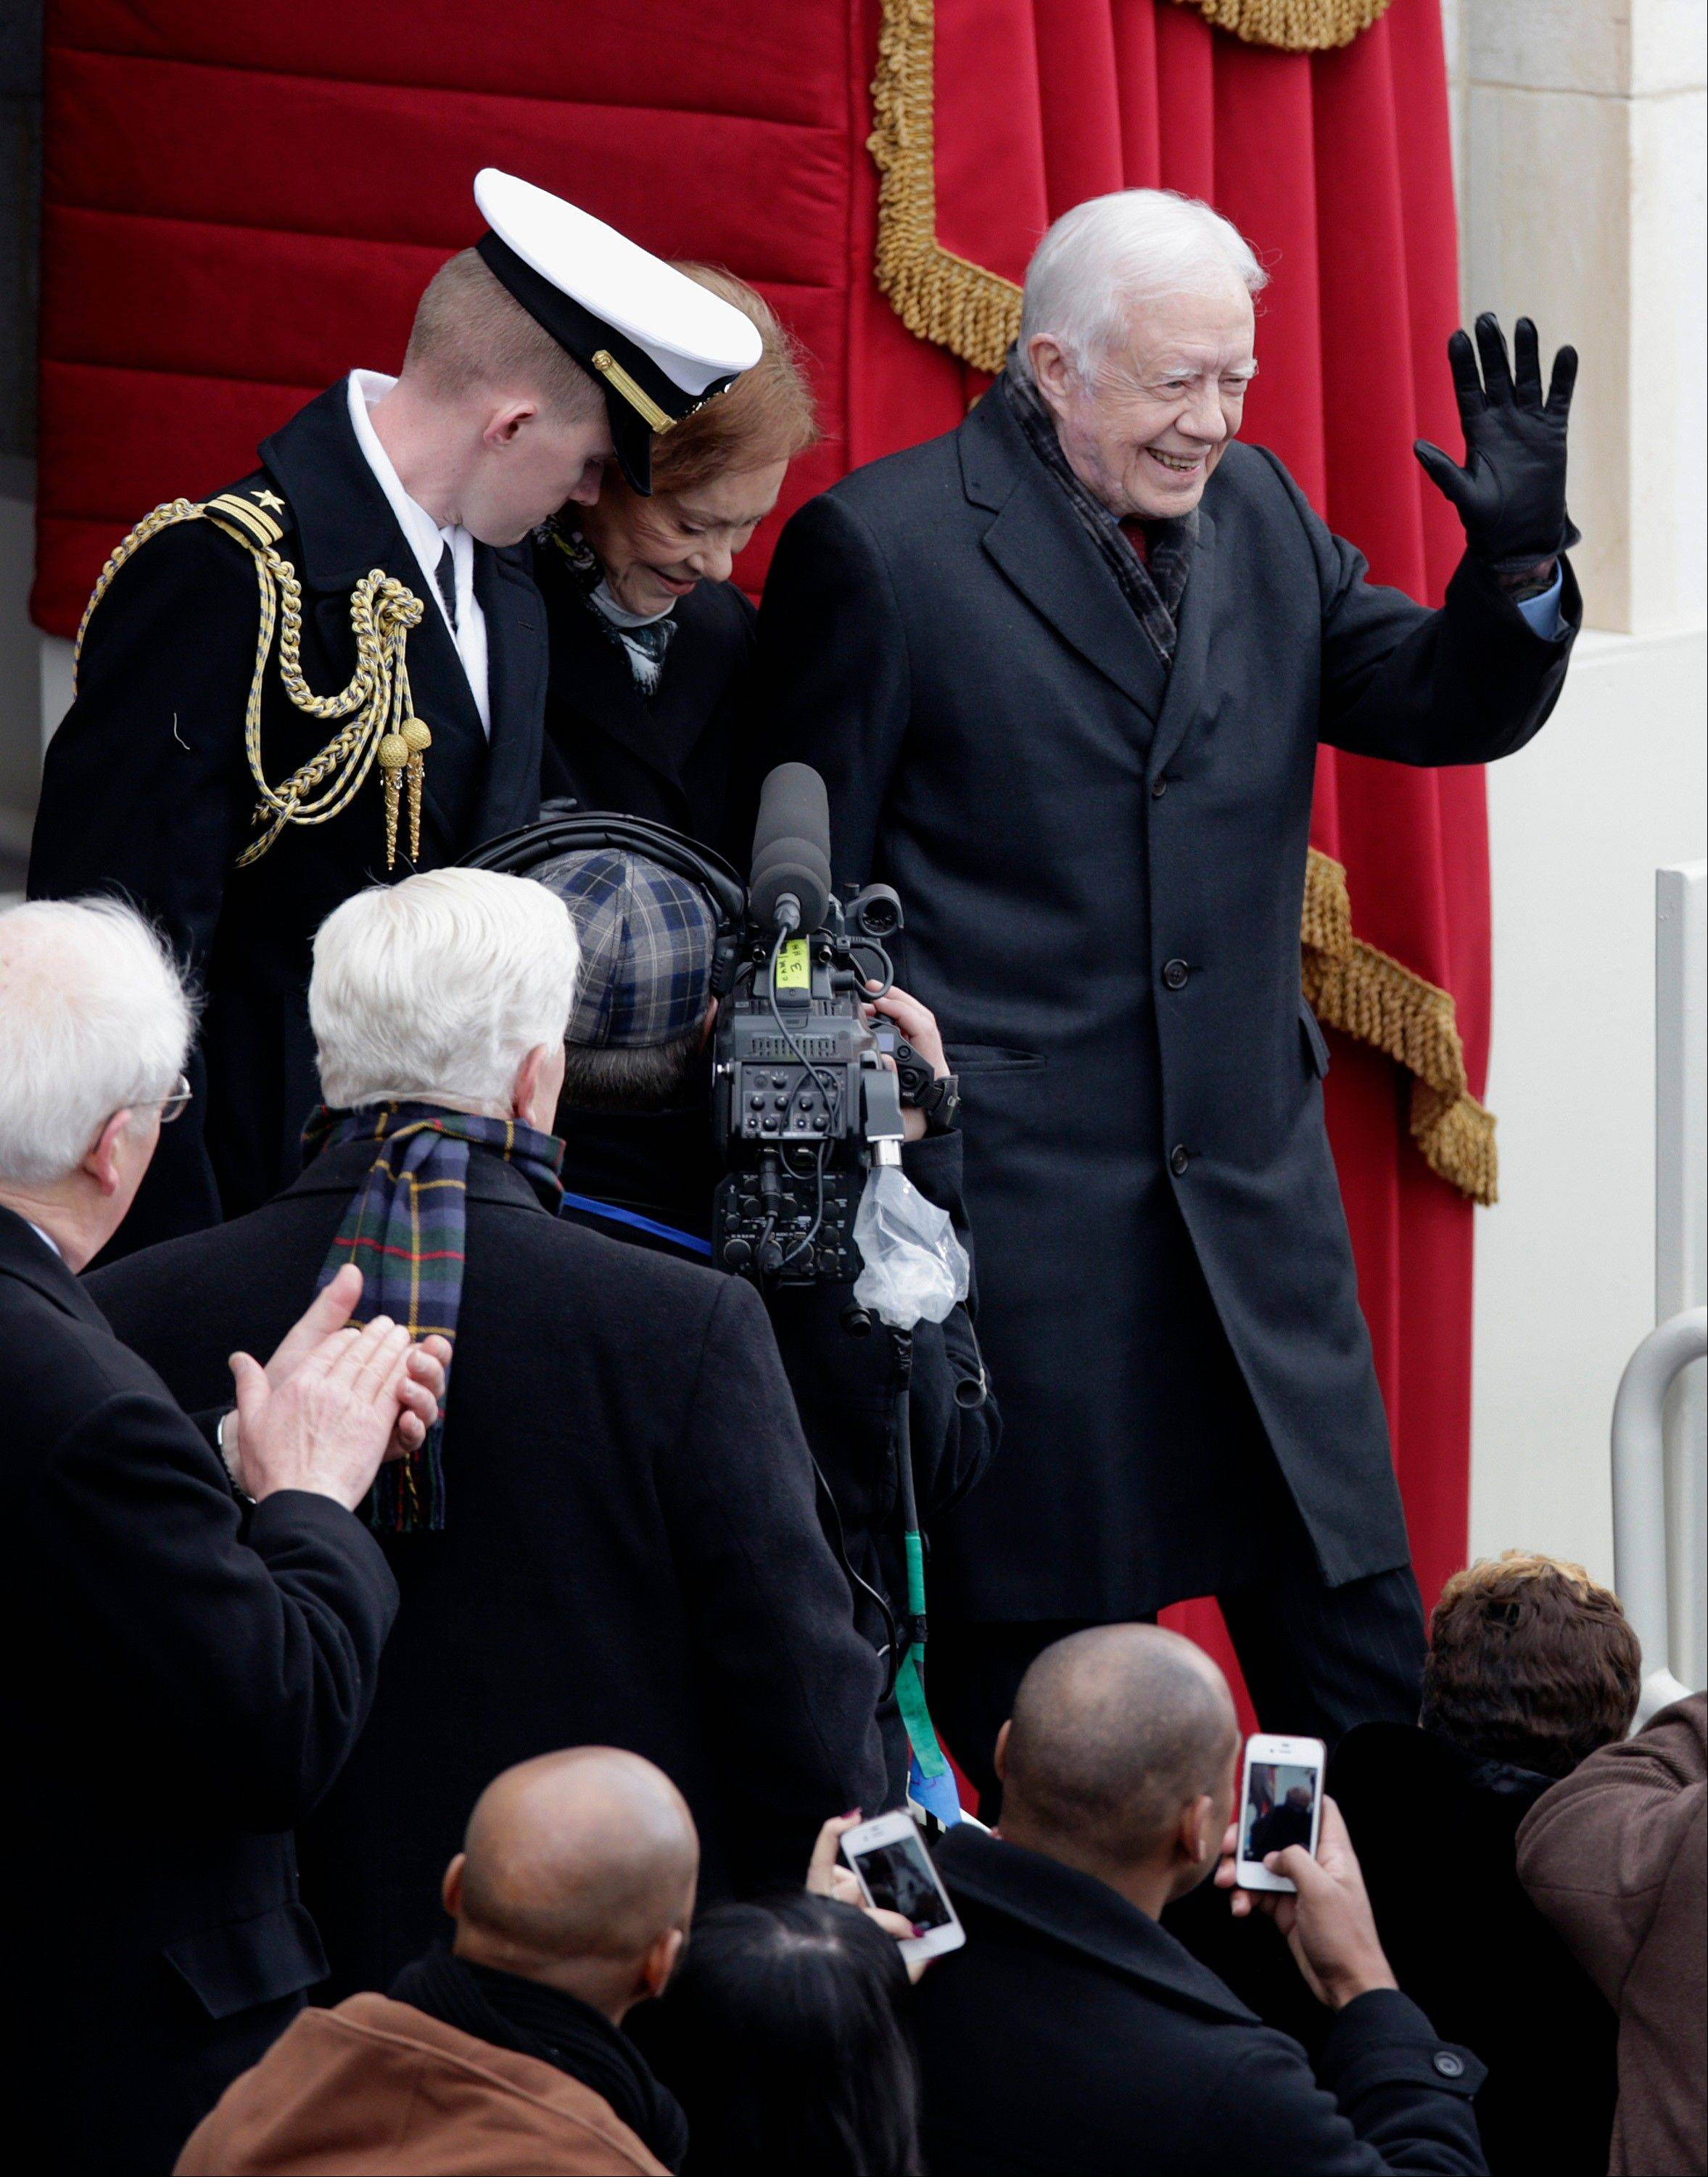 Former U.S. President Jimmy Carter, right, waves while arriving with his wife Rosalynn Carter, center, during the presidential inauguration in Washington, D.C., U.S., on Monday, Jan. 21, 2013.